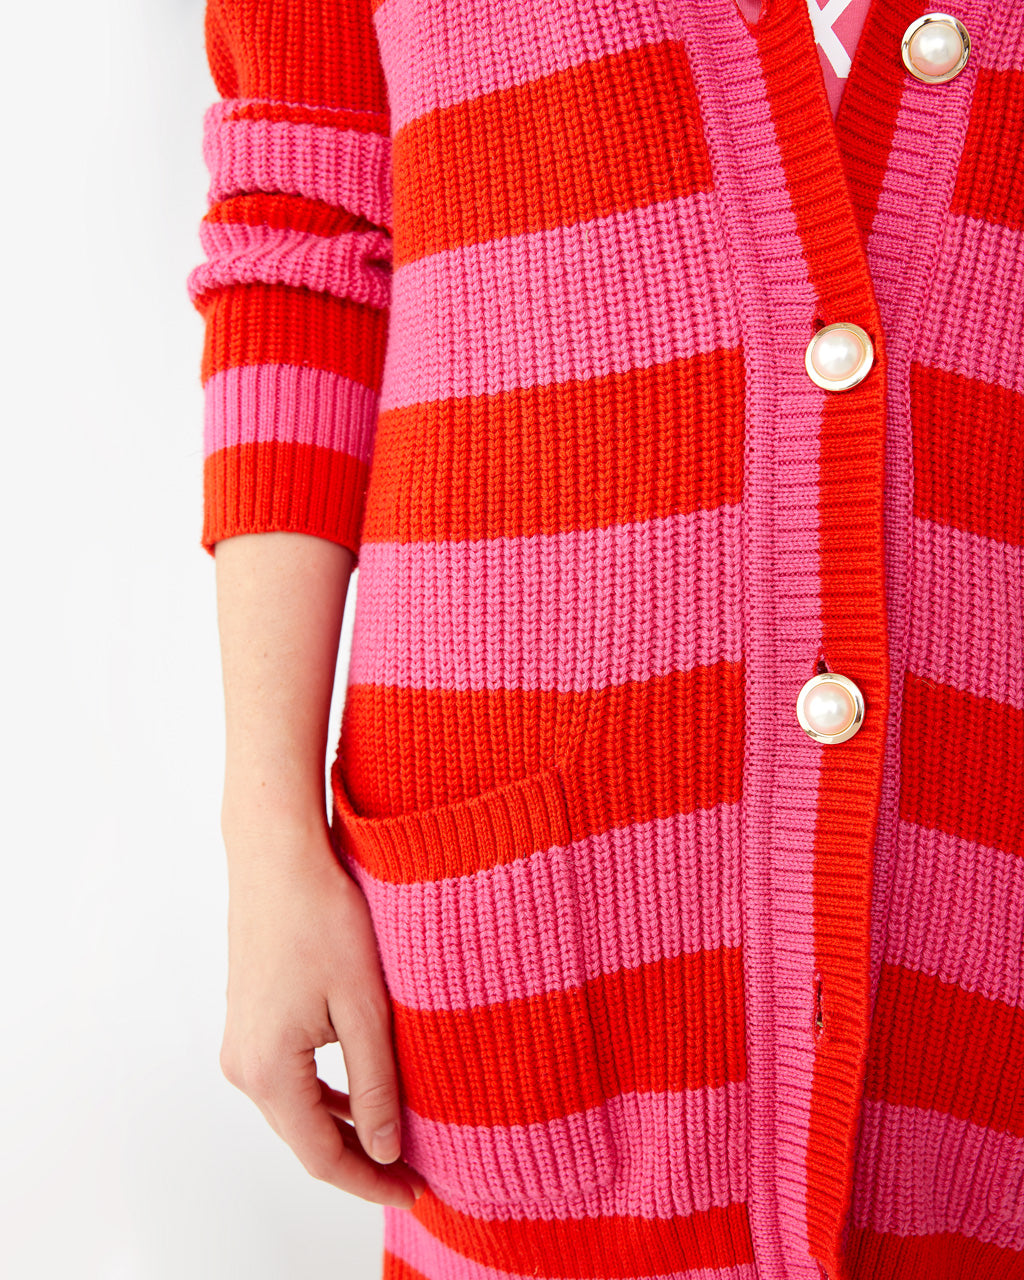 pink and red striped cardigan with large button feature down the front and pockets